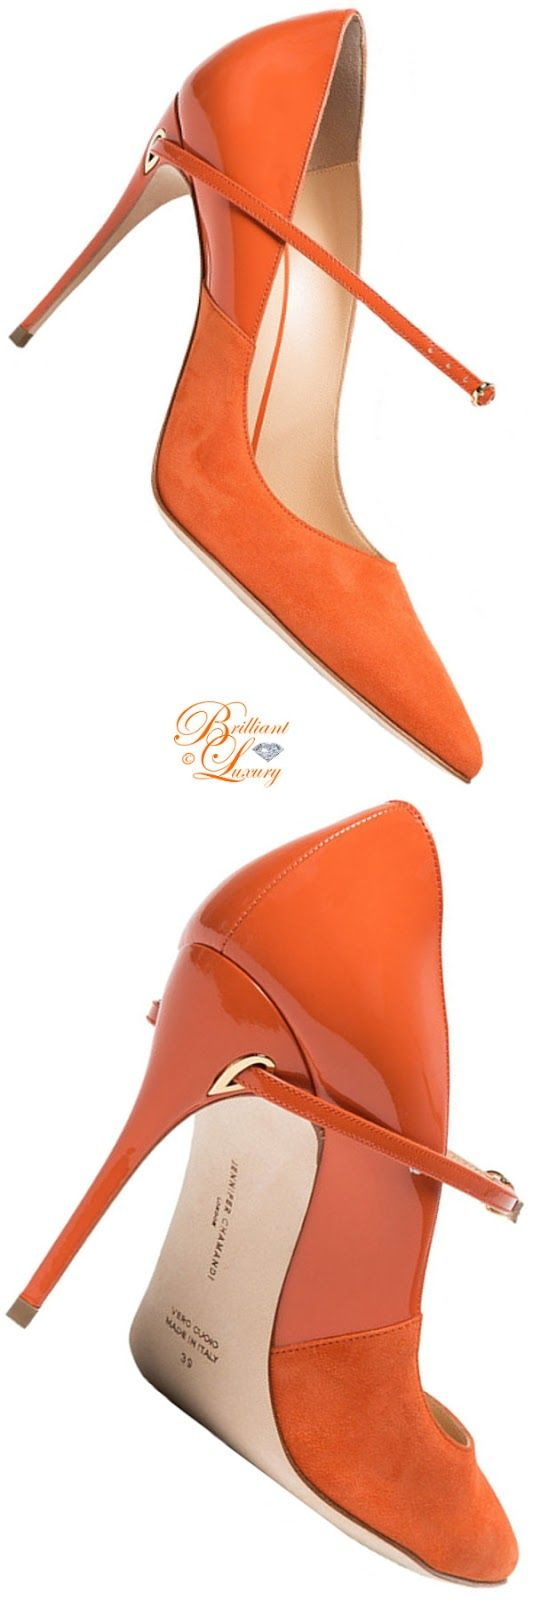 df845831d8a Jennifer Chamandi Lorenzo leather suede pumps  orange  pumps  highheels   stilettos